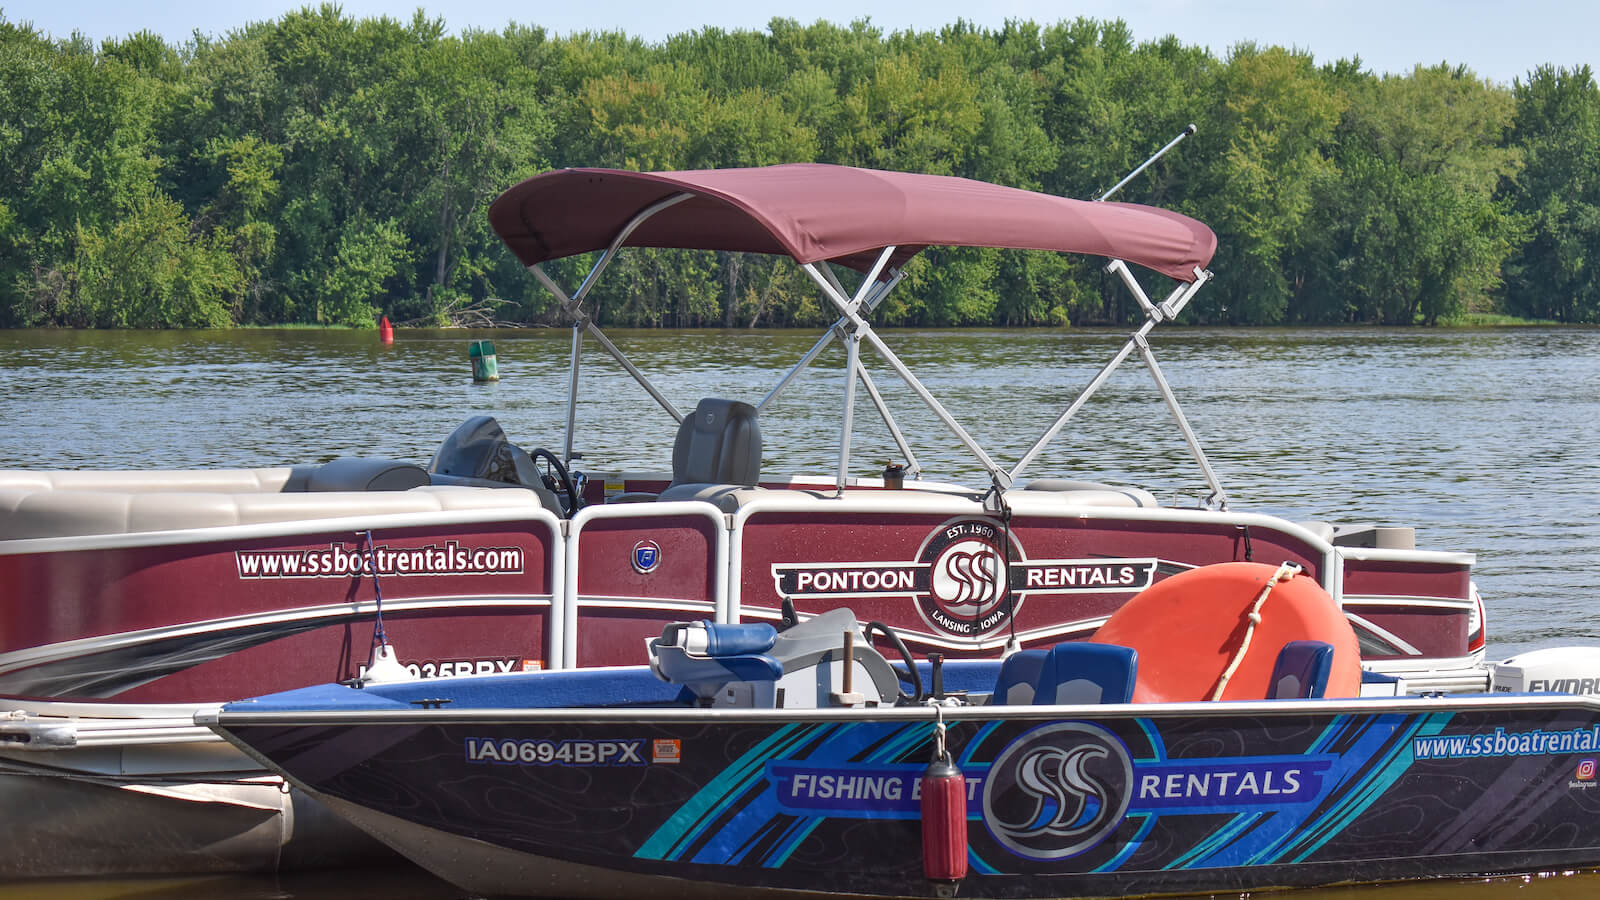 S&S Rentals pontoon boat and fishing boat